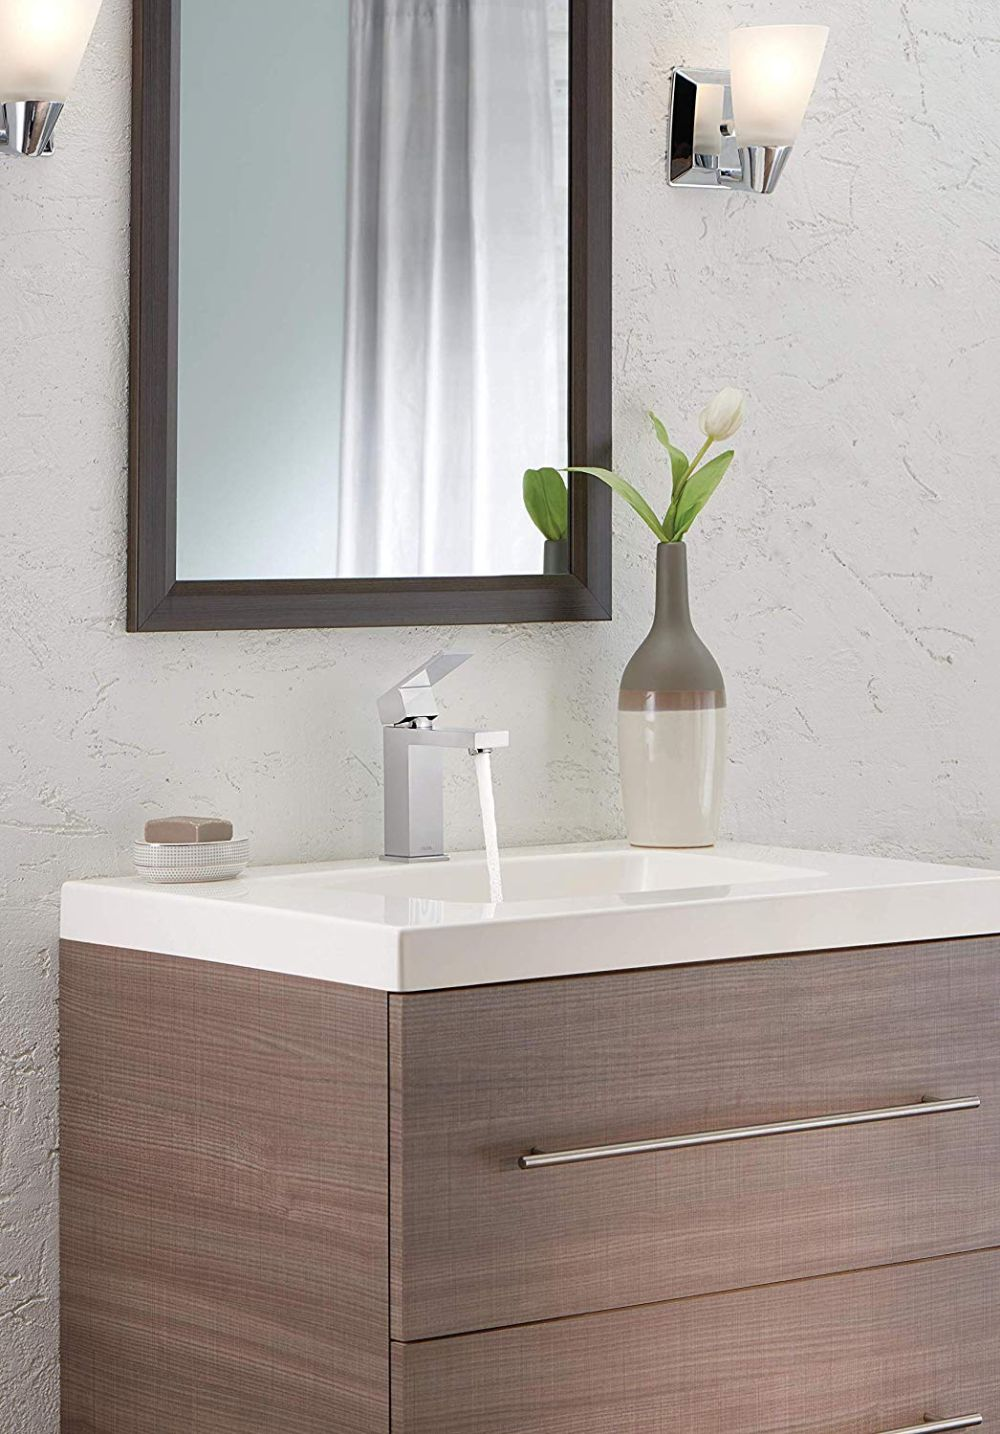 Moen Genta Chrome 1 Handle Bathroom Faucet: The Best Bathroom Sink Faucets You Can Buy Right Now